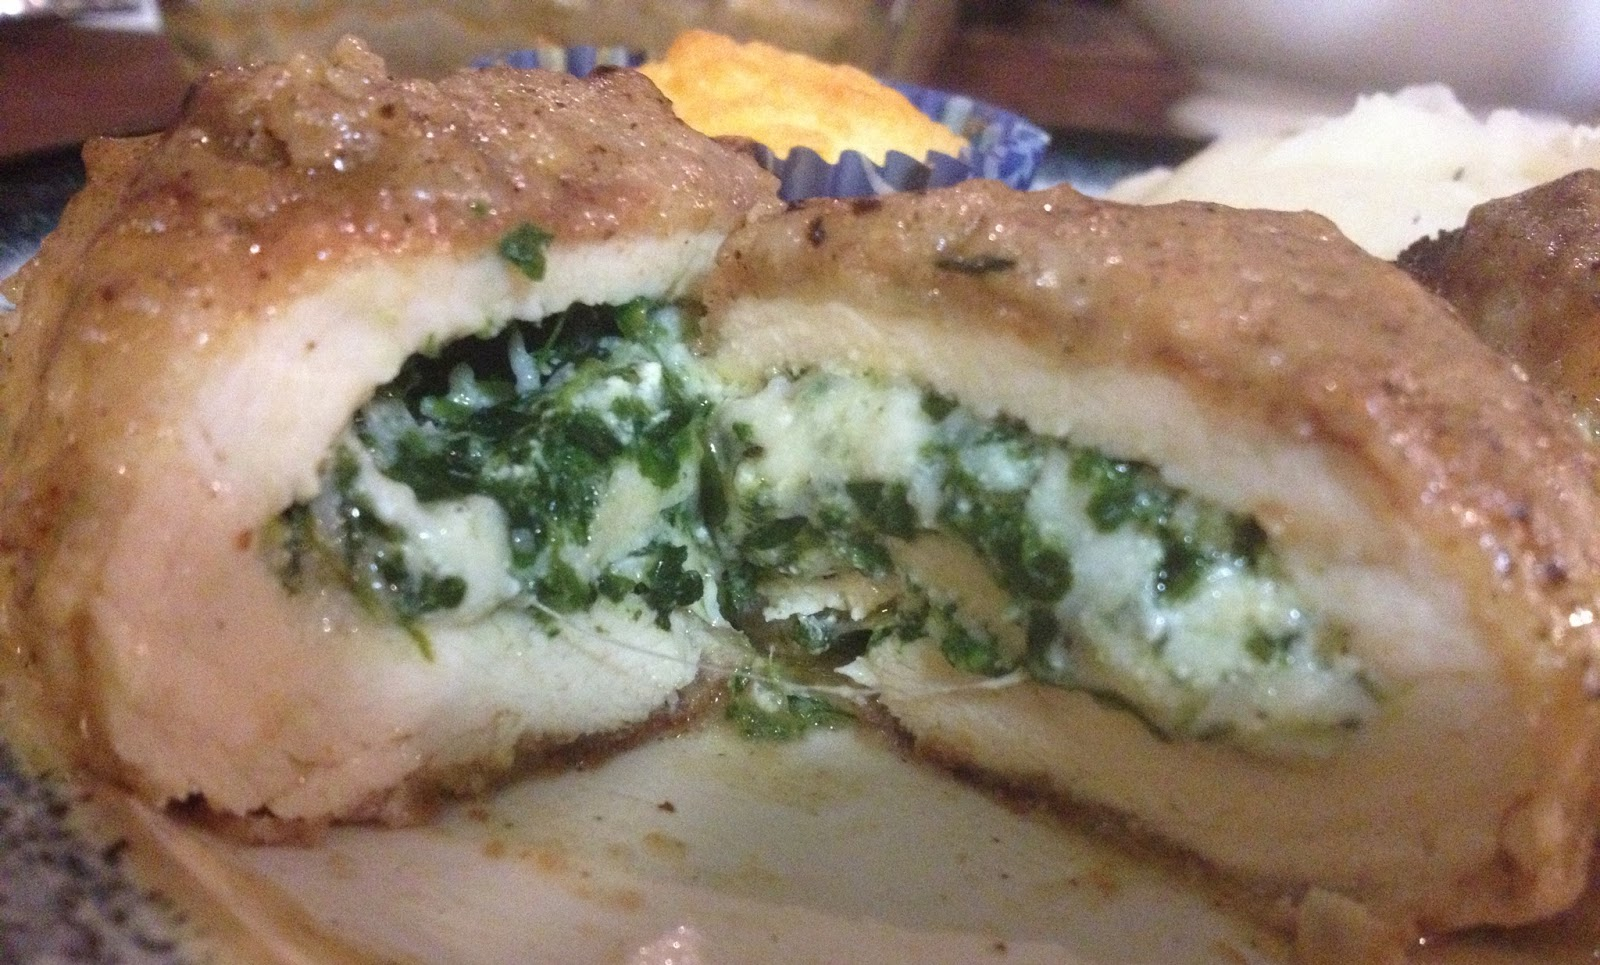 RECIPES: SPINACH & CHEESE STUFFED CHICKEN